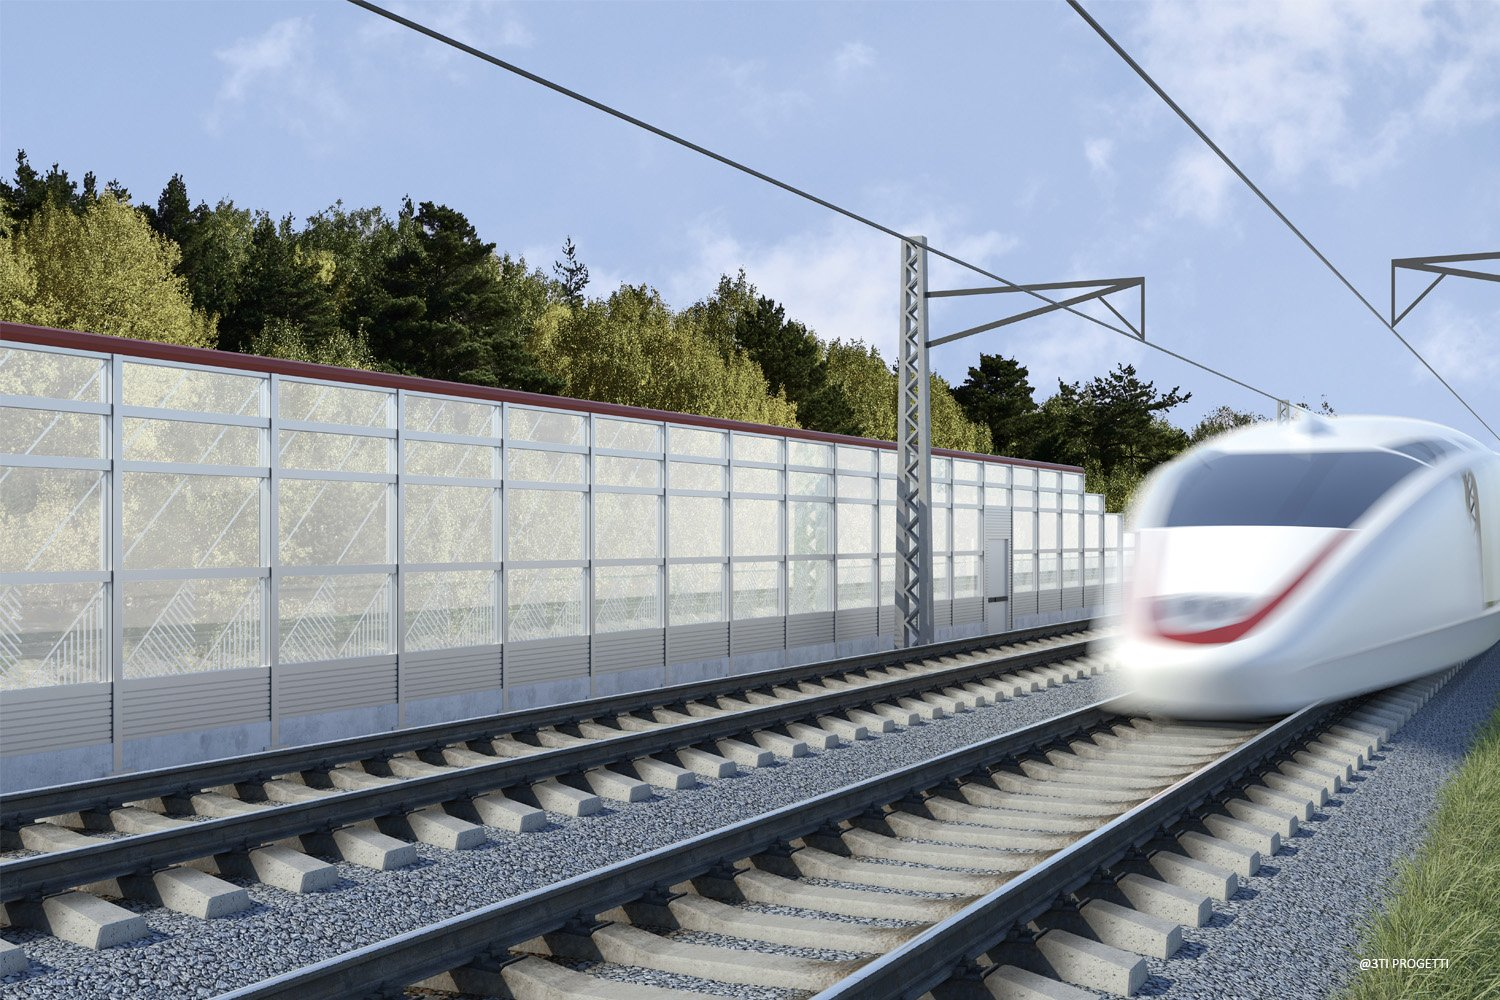 TRANSPARENT NOISE BARRIERS 3TI PROGETTI